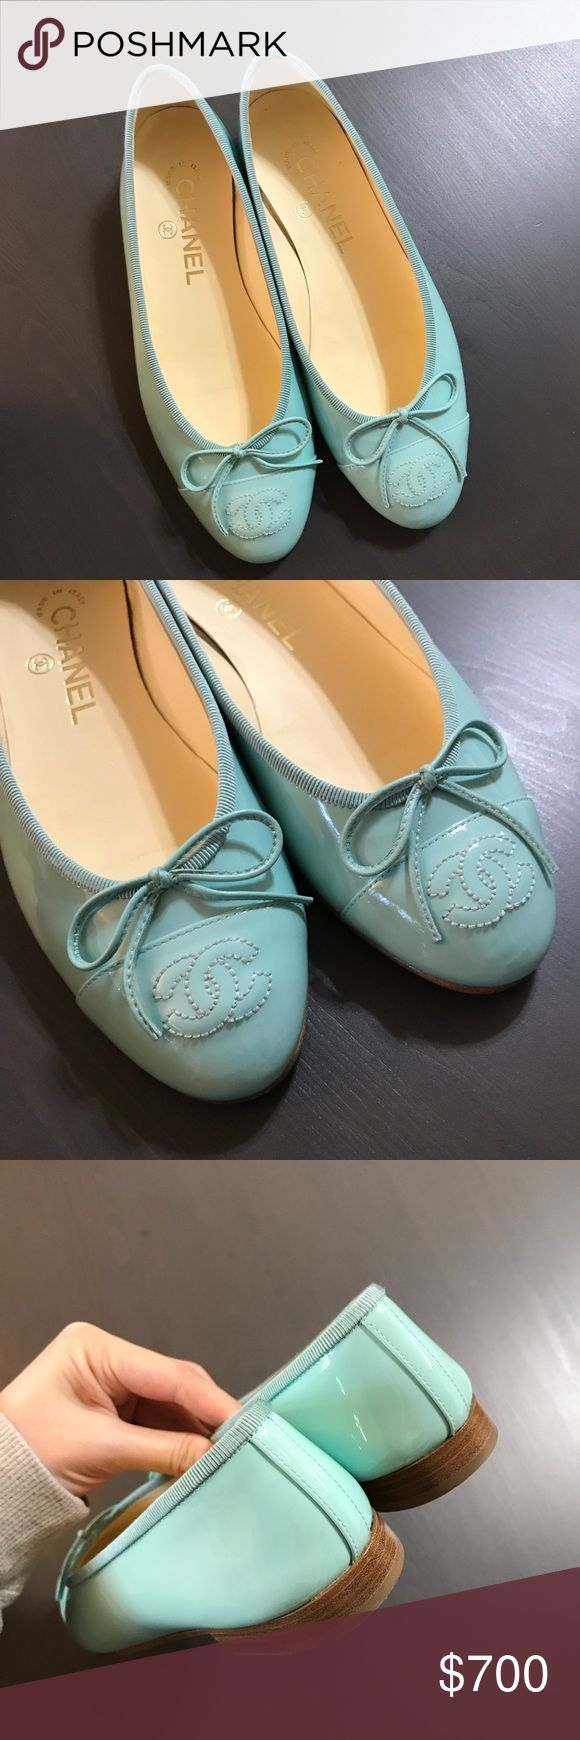 Chanel Classic Ballerina Flats in size 35.5 Almost brand new condition😍 100% Authentic. Comes with shoes box and dust bag. No receipt it is a gift. No lowball please. Super cute color  like Tiffany Blue or 🍏 and you can not find this color at anywhere anymore. Listing price is the lowest price I can go for this pair cause Poshmark takes 20% out of it... Happy shopping!!! CHANEL Shoes Flats & Loafers